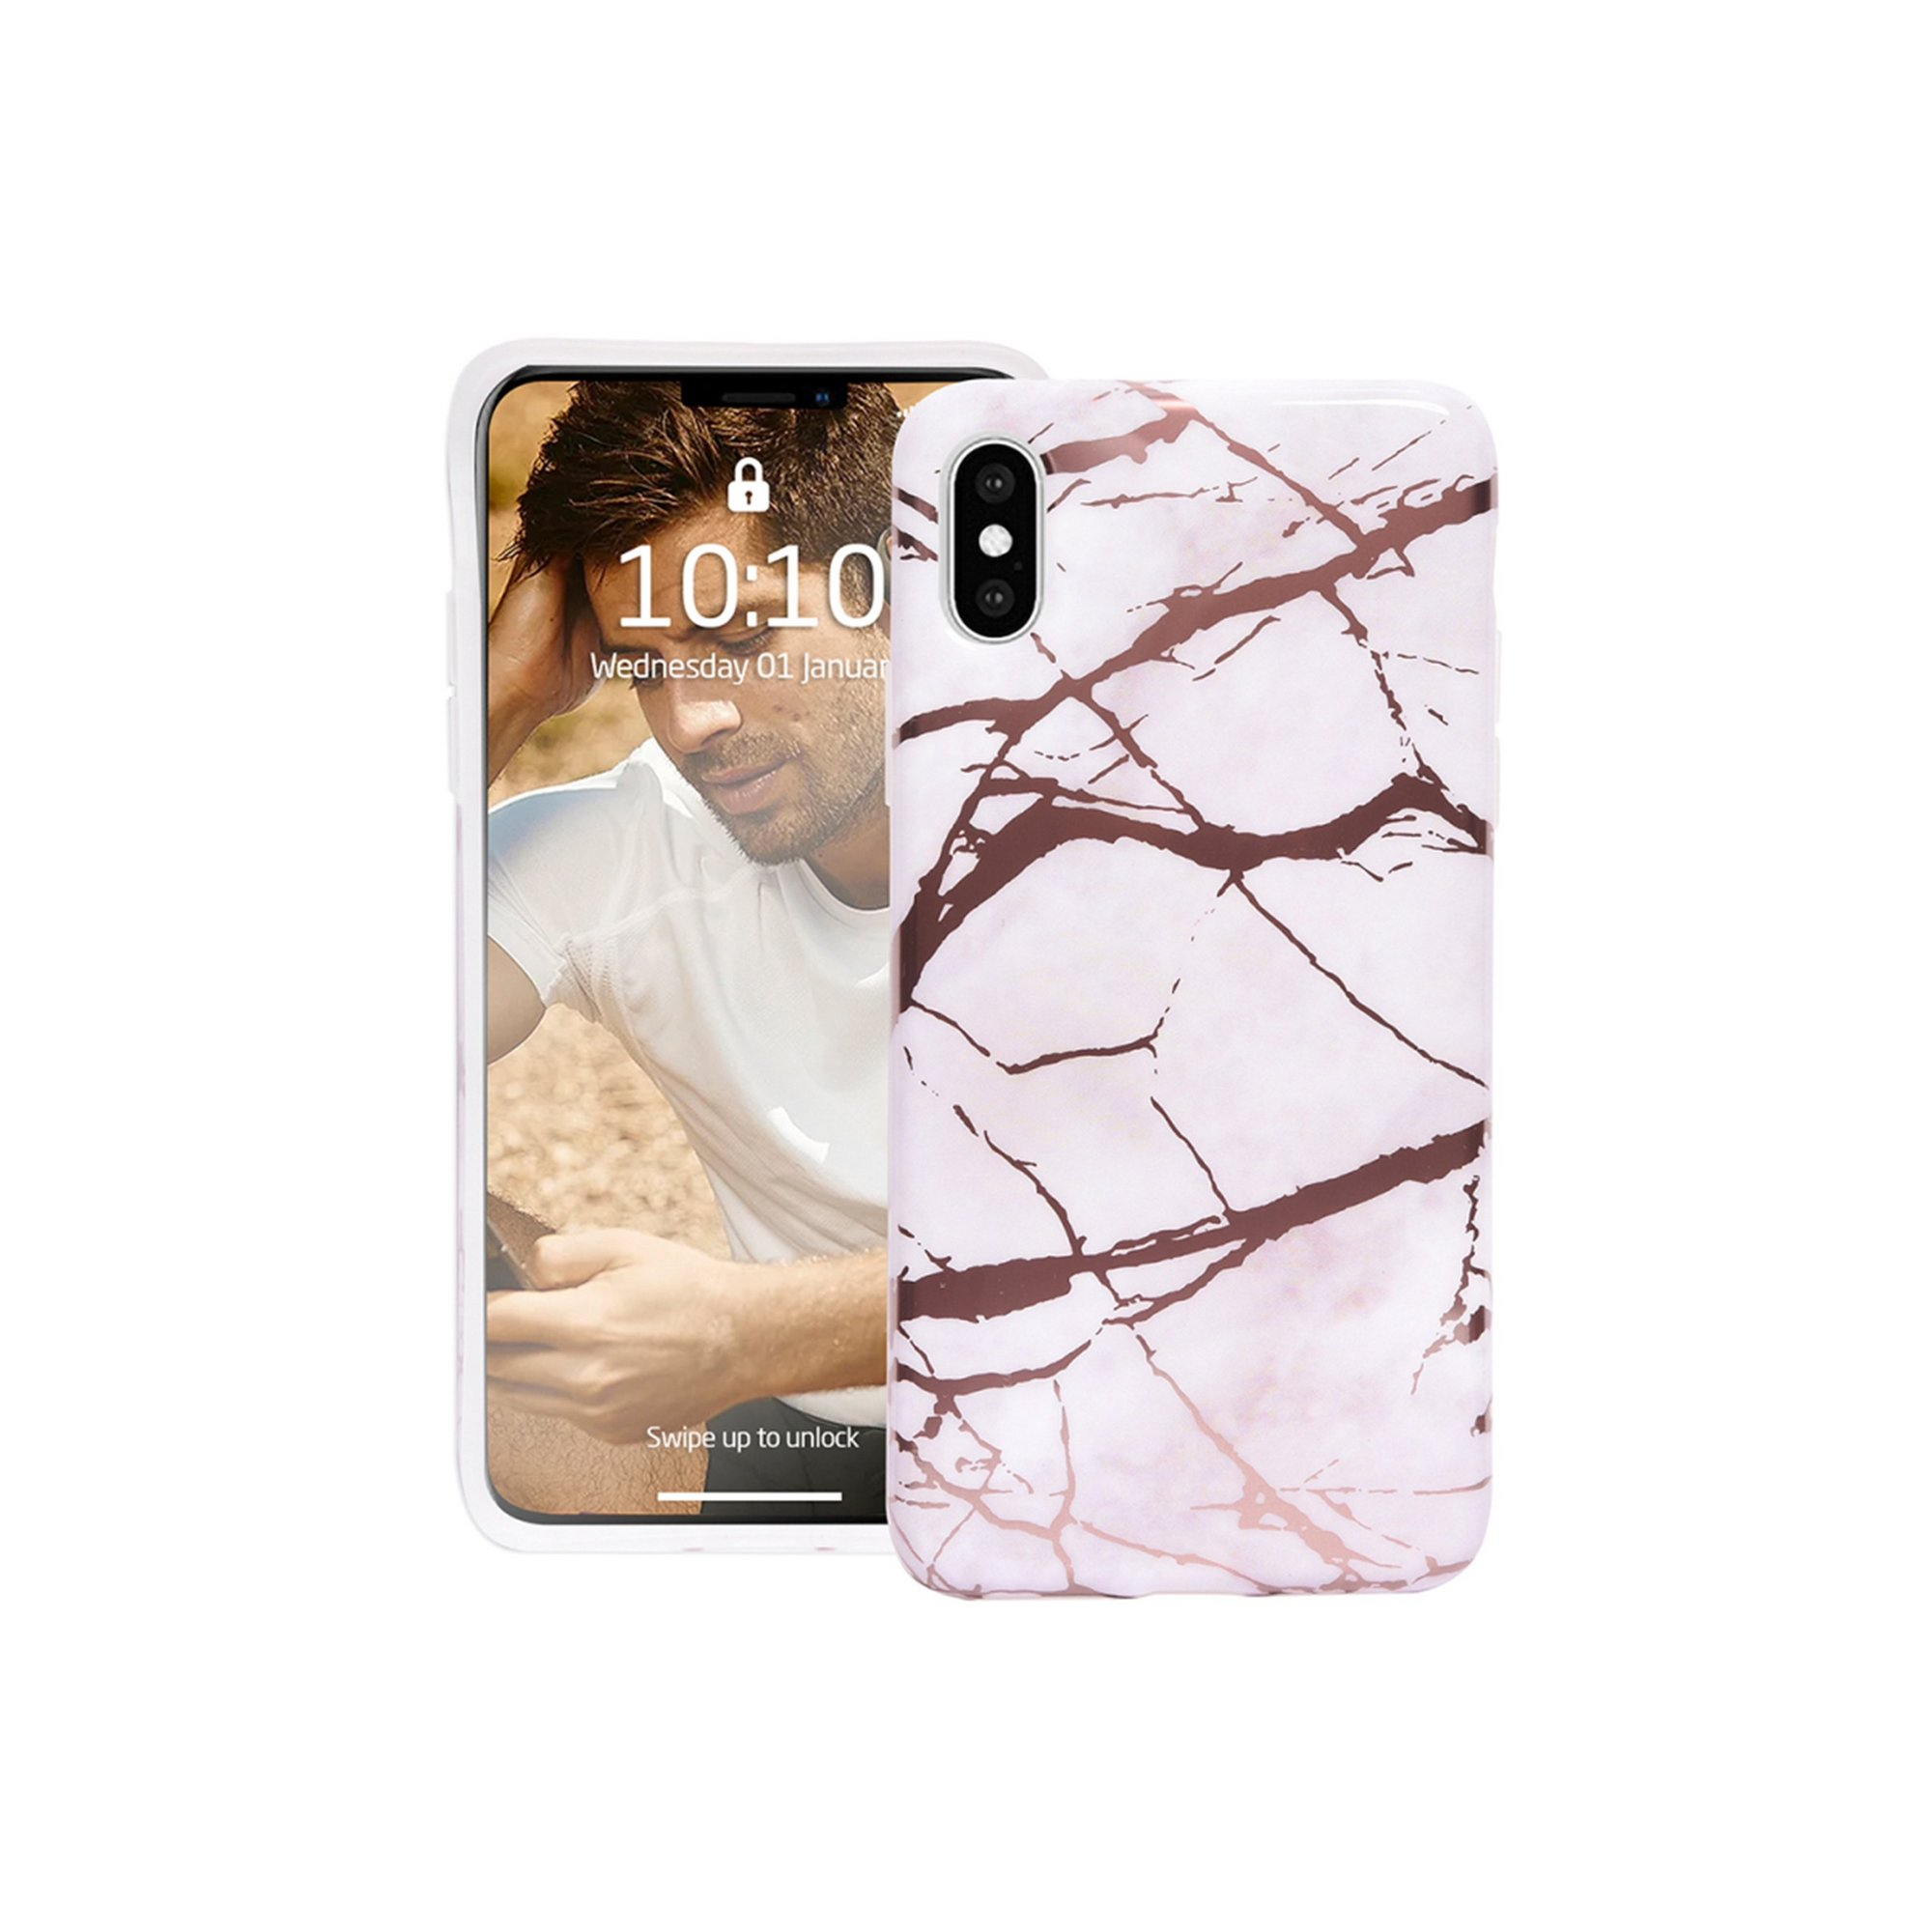 Image of Groov-e Design Case for iPhone X/XS - Marble